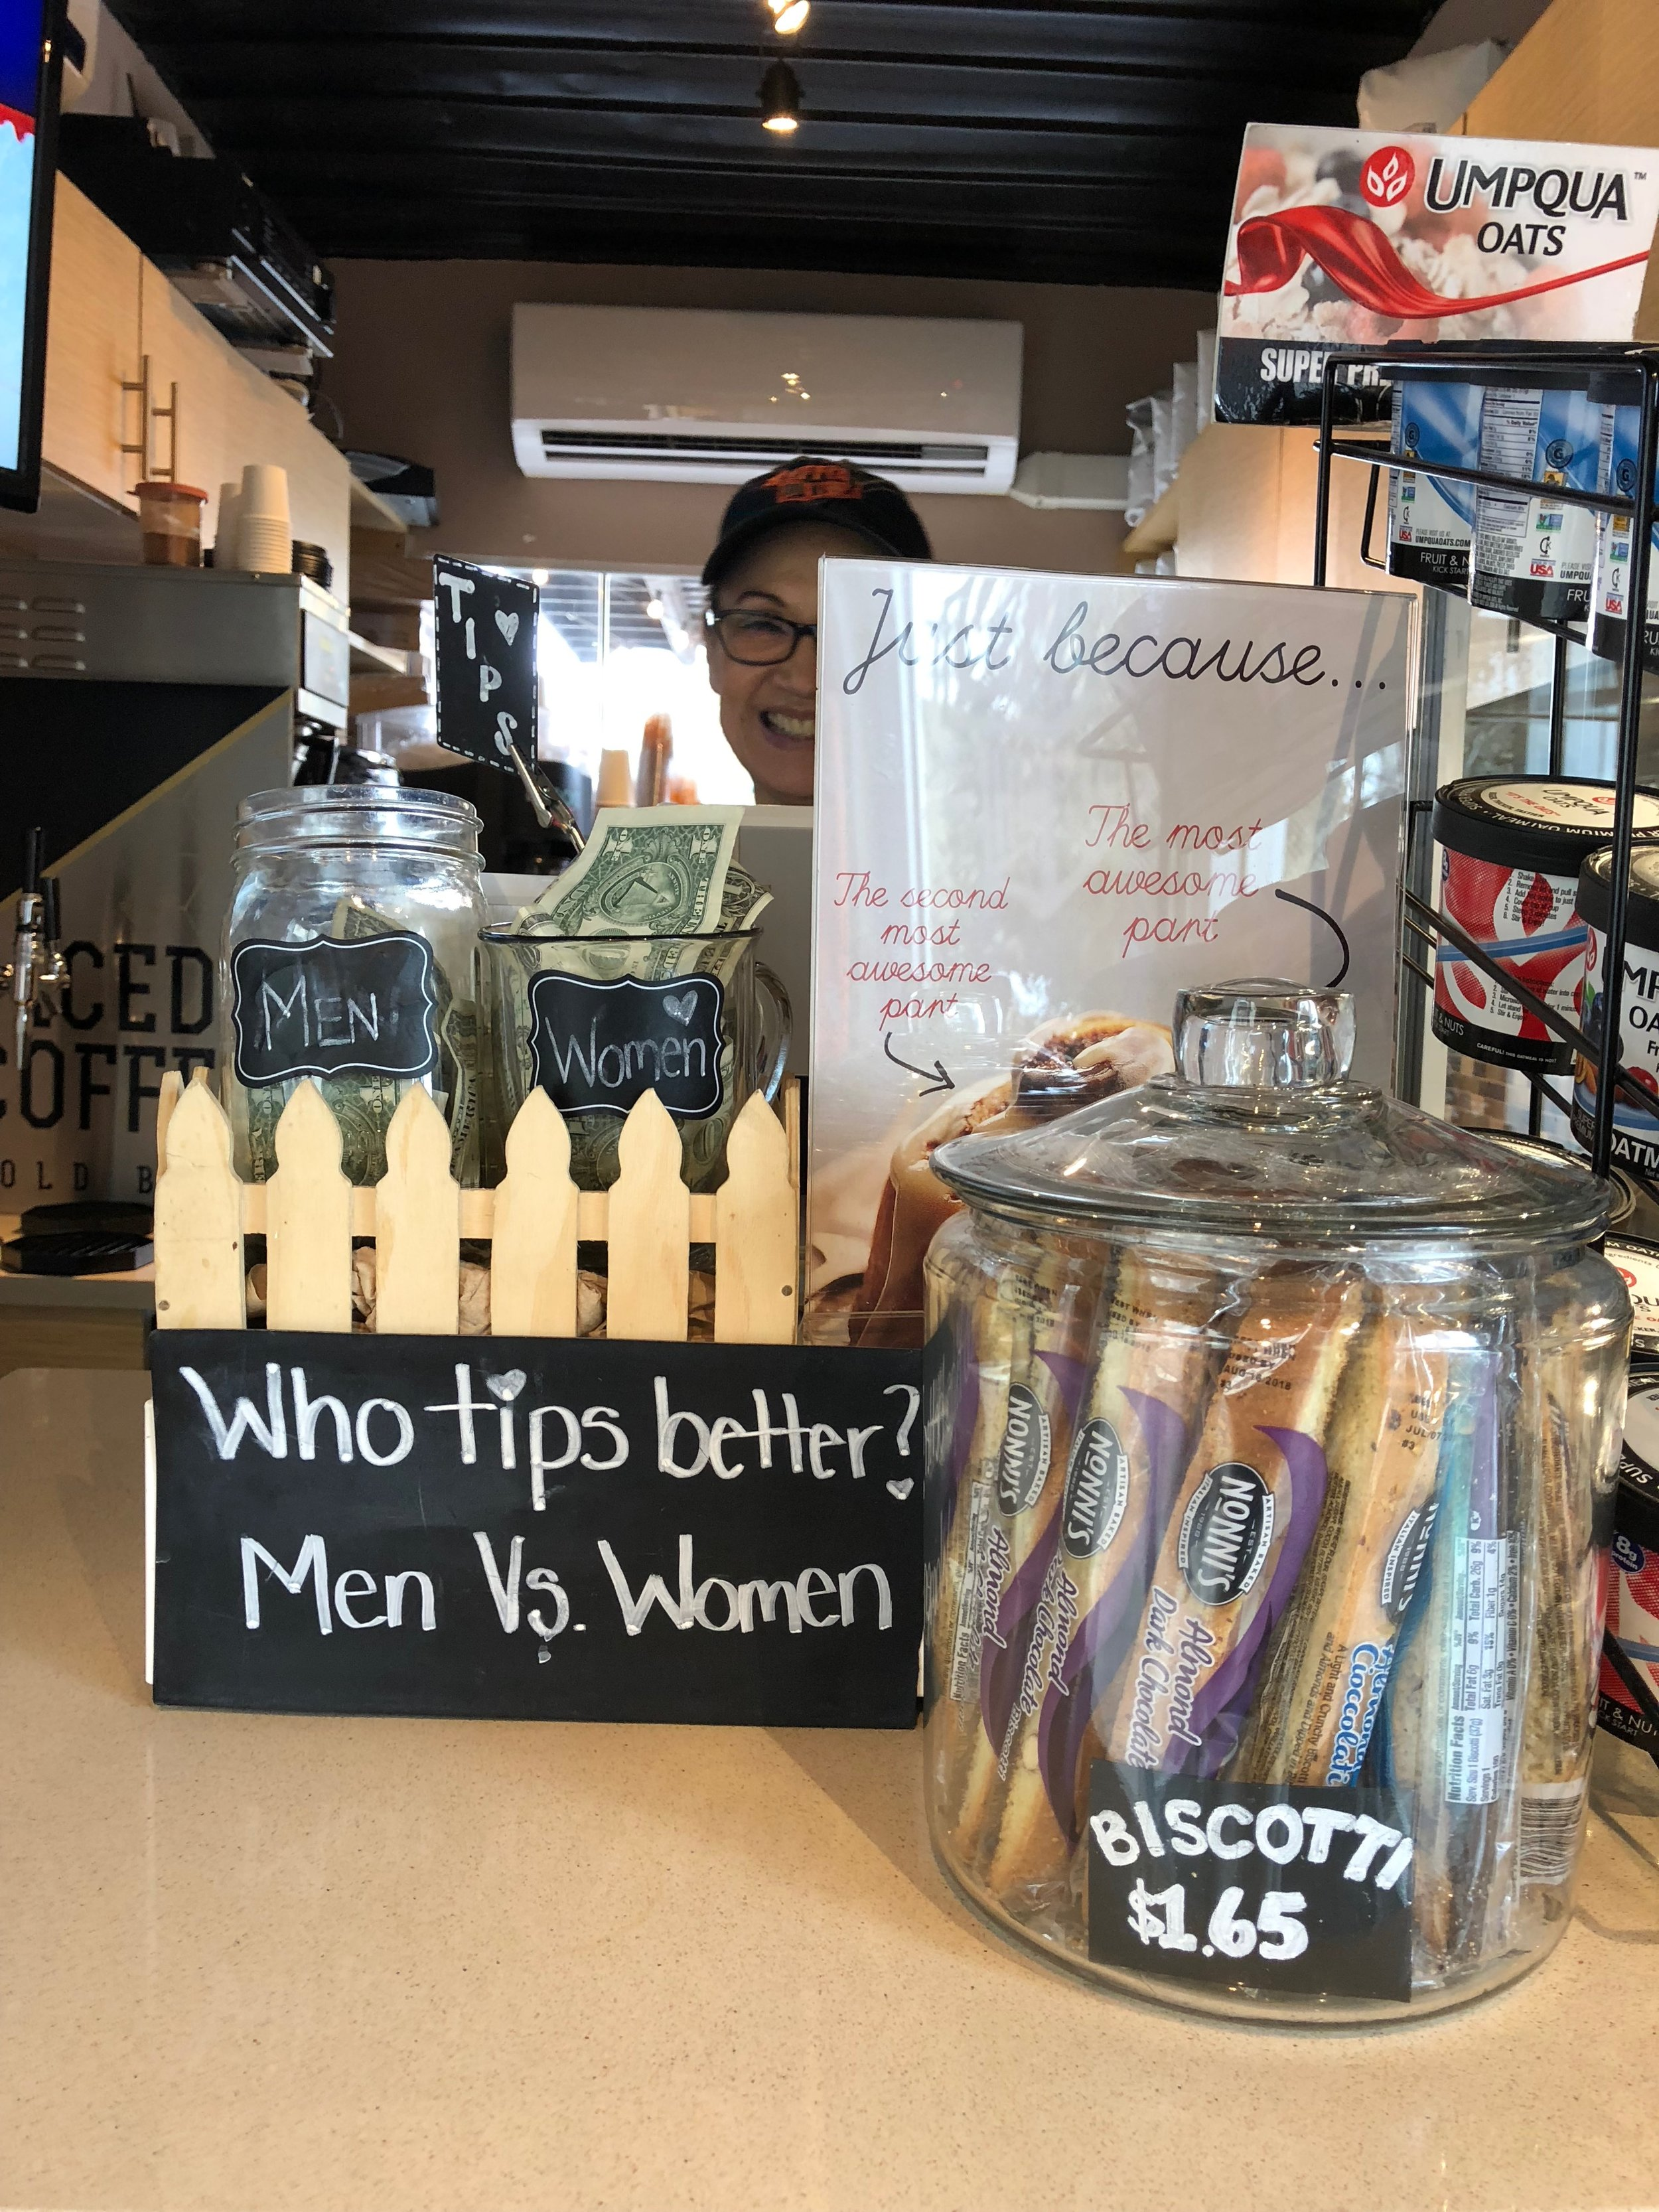 This tip jar is just genius. And women clearly tip better! -